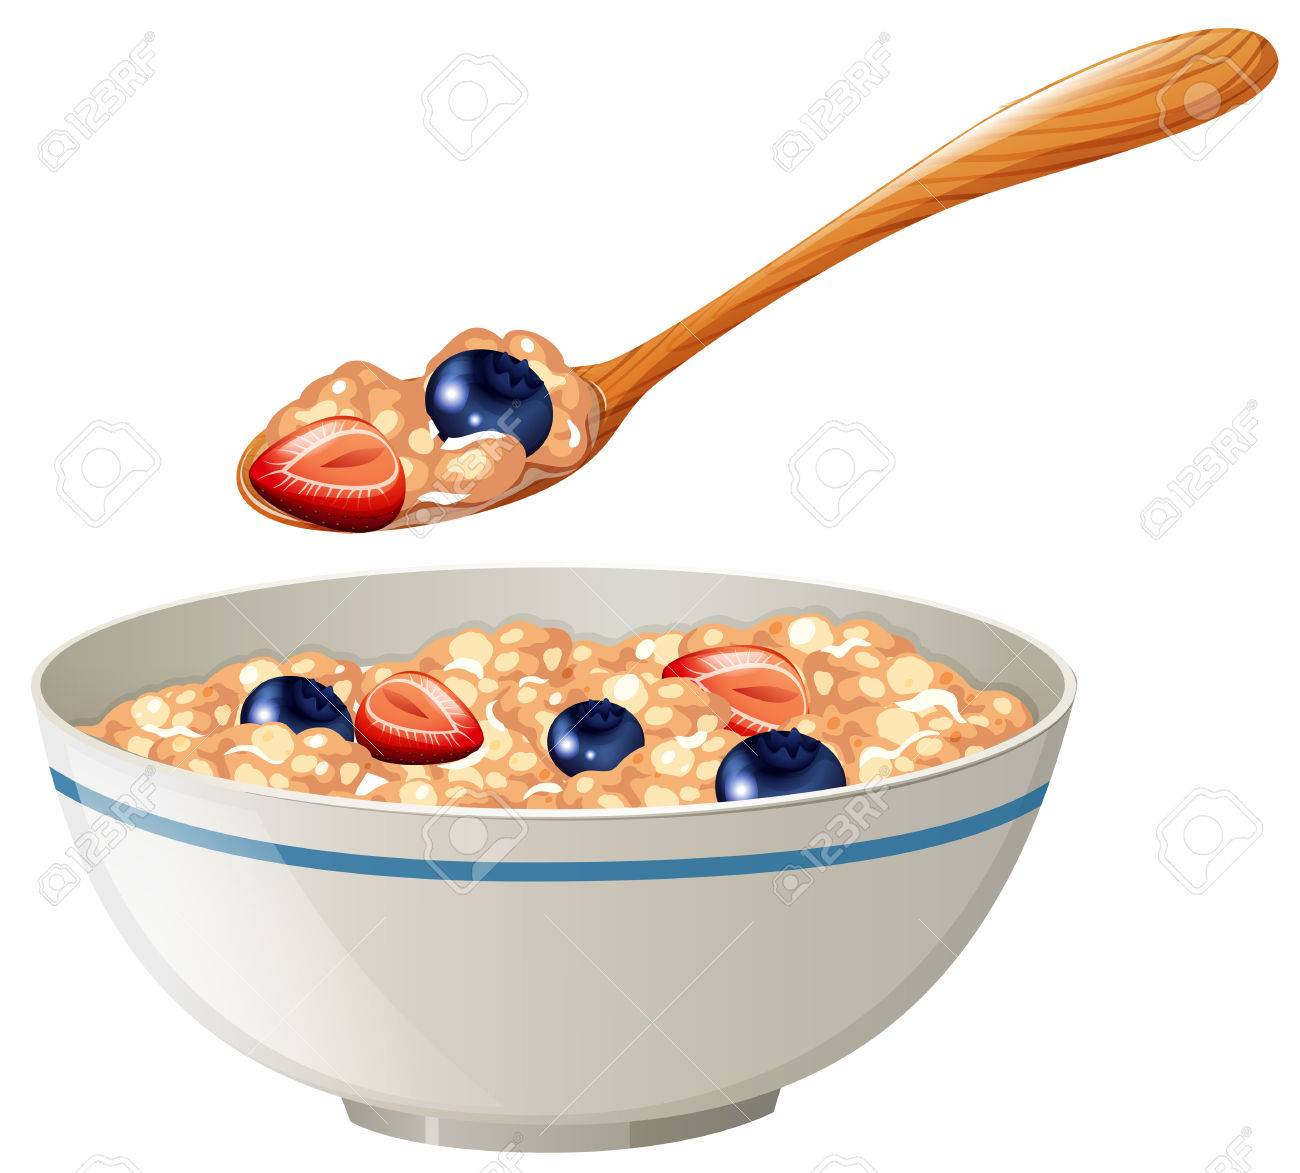 Oatmeal with berries in the bowl illustration.